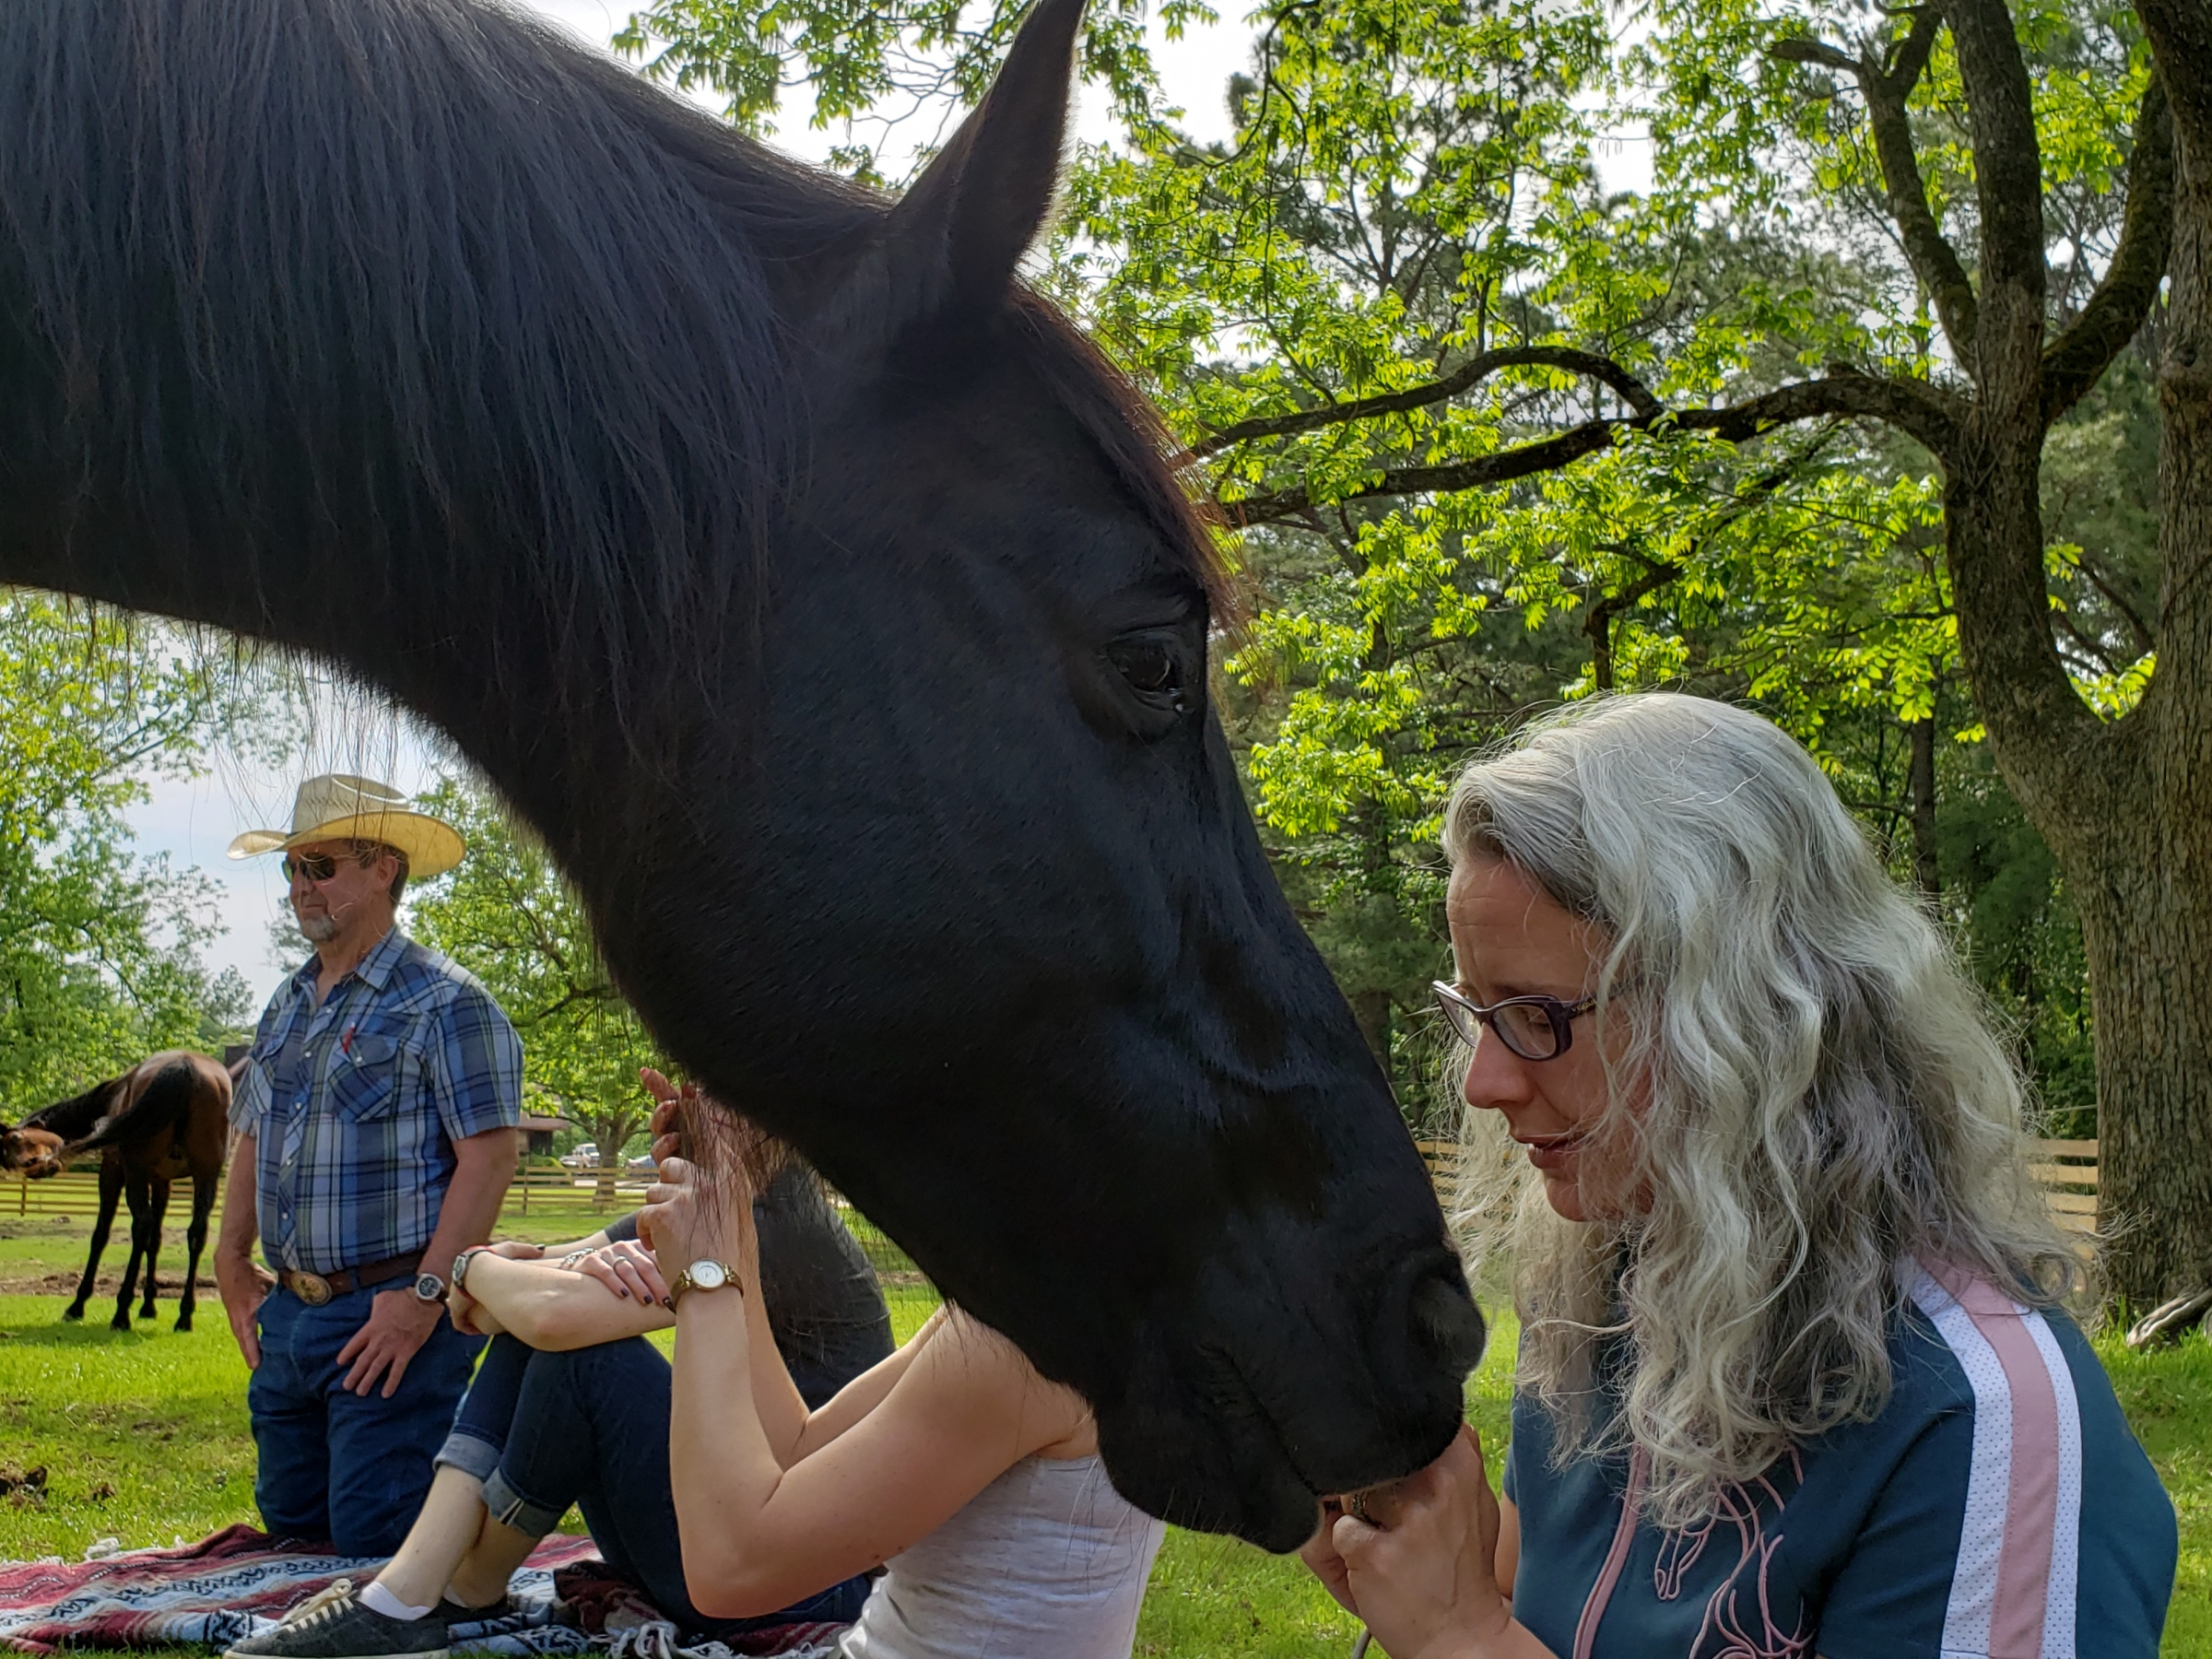 A black horse has its nose near a woman's nose. The woman has white hair.